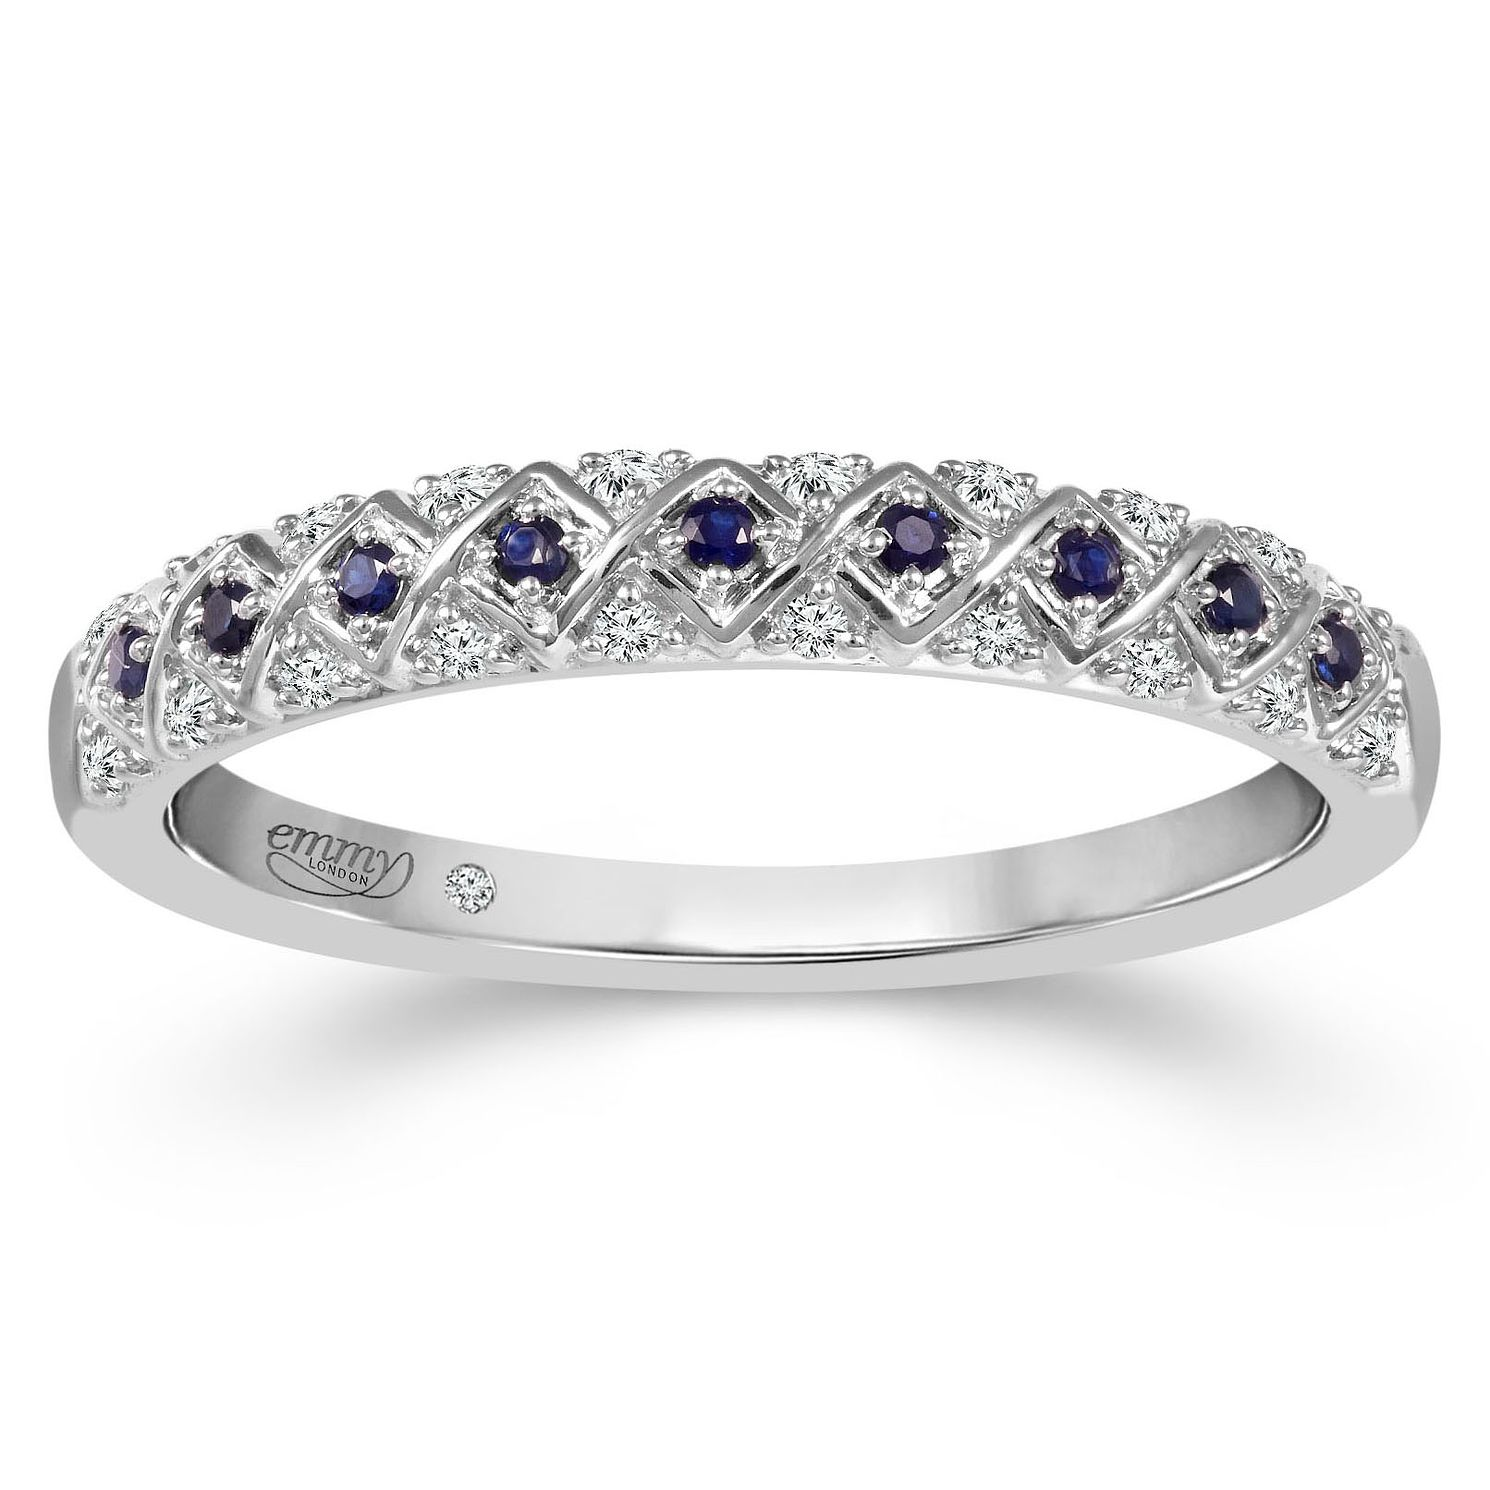 Emmy London Platinum Sapphire & Diamond Eternity Ring - Product number 6099912